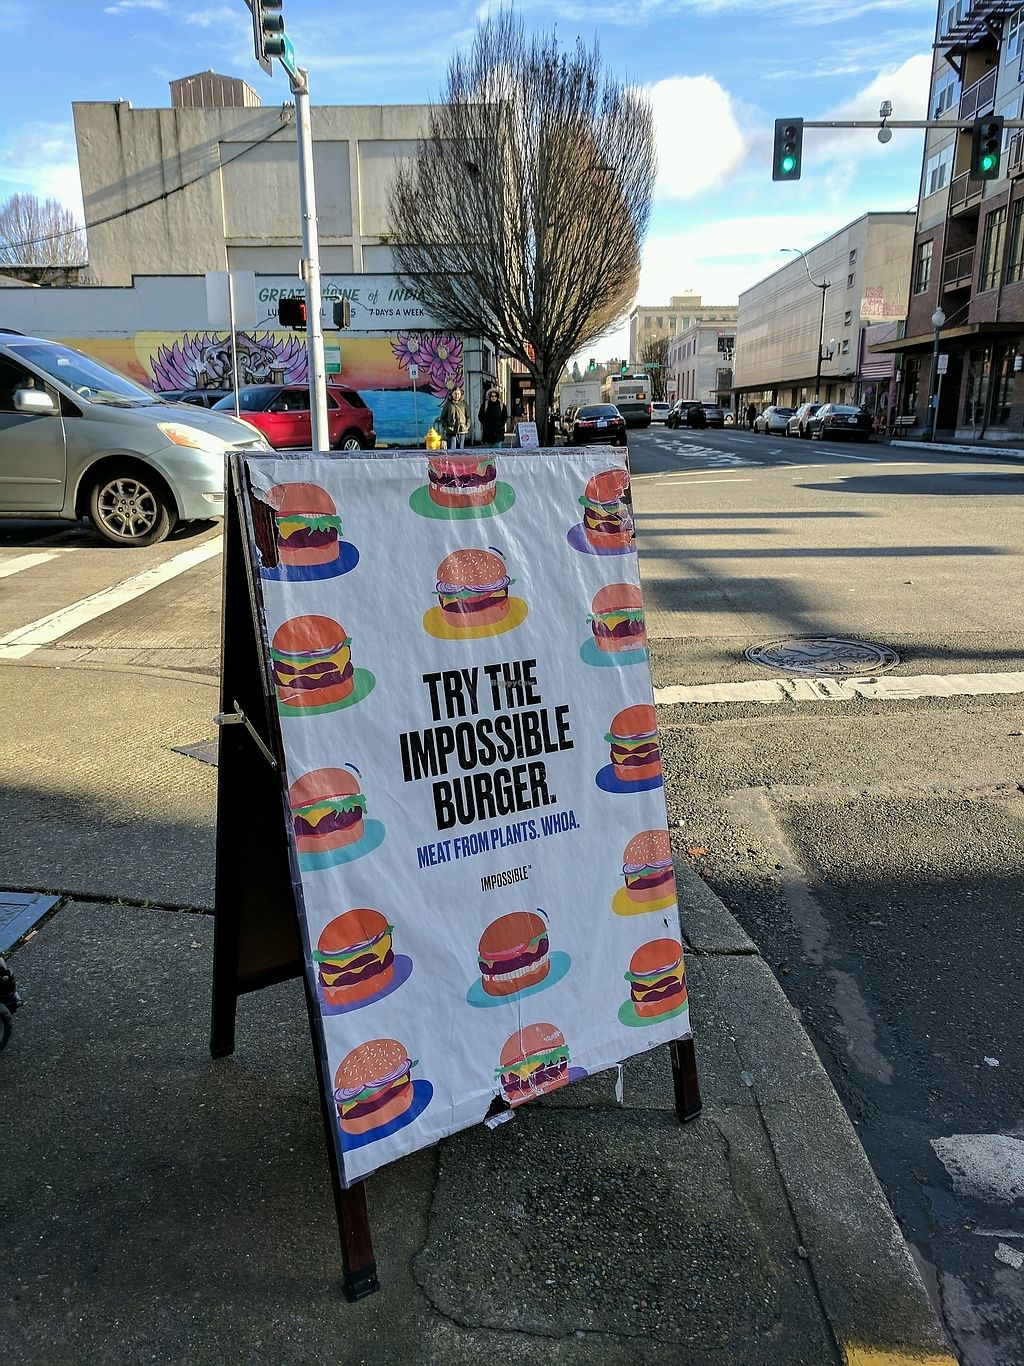 """Photo of Cascadia Grill  by <a href=""""/members/profile/Em%20C"""">Em C</a> <br/>impossible burger! <br/> January 18, 2018  - <a href='/contact/abuse/image/108540/347864'>Report</a>"""